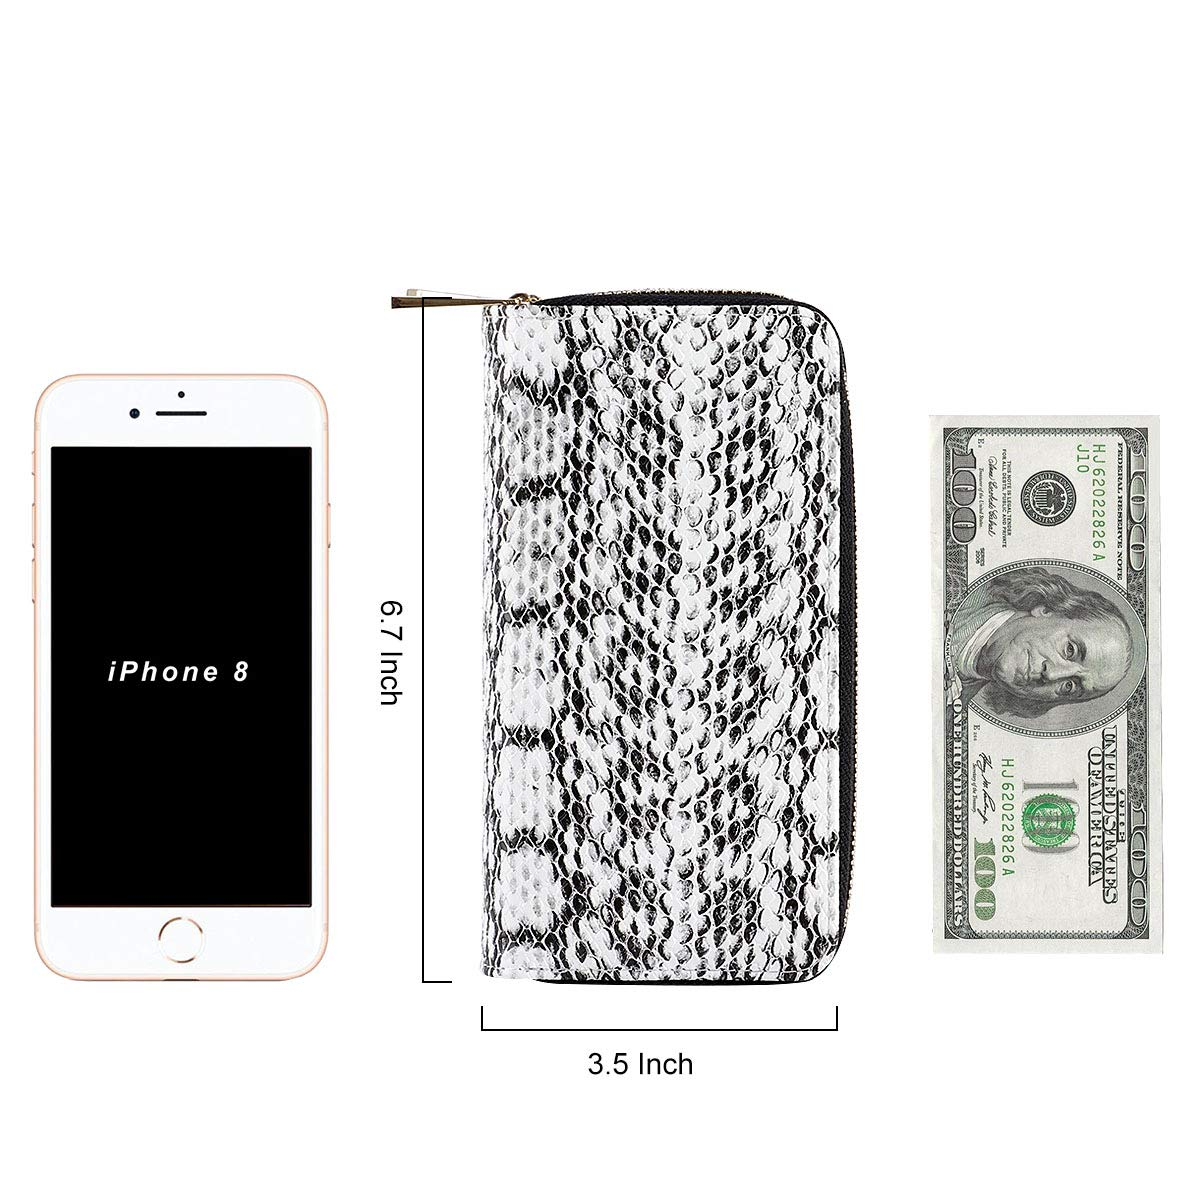 HAWEE Cellphone Wallet Dual Zipper Wristlet Purse with Credit Card Case/Coin Pouch/Smart Phone Pocket Soft Leather for Women or Lady, SnakeSkin White by HAWEE (Image #6)